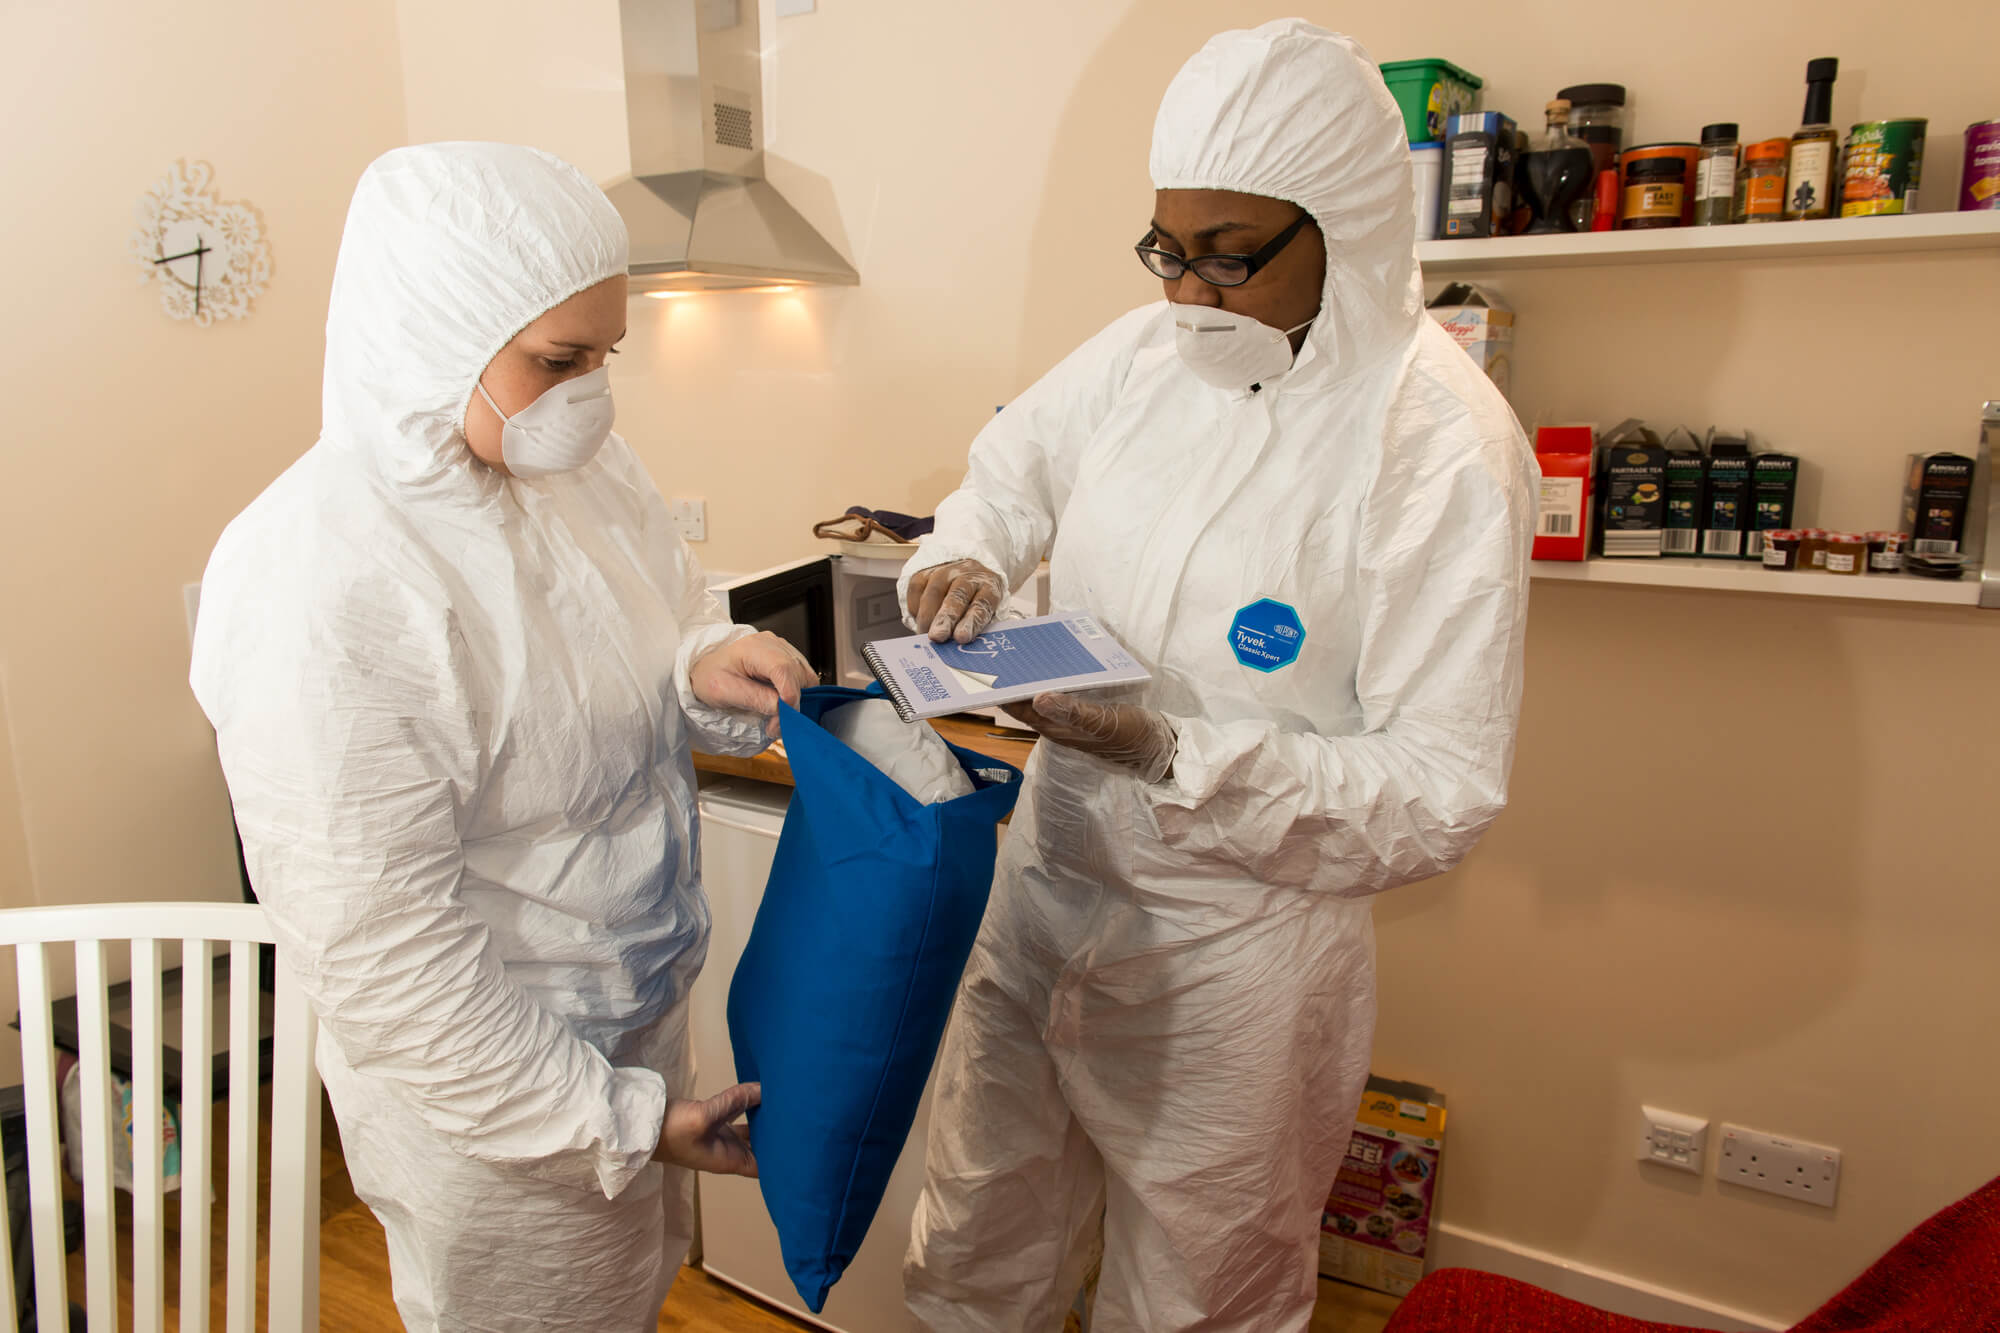 Students bagging up evidence during a practical session in the Forensic Training Facility